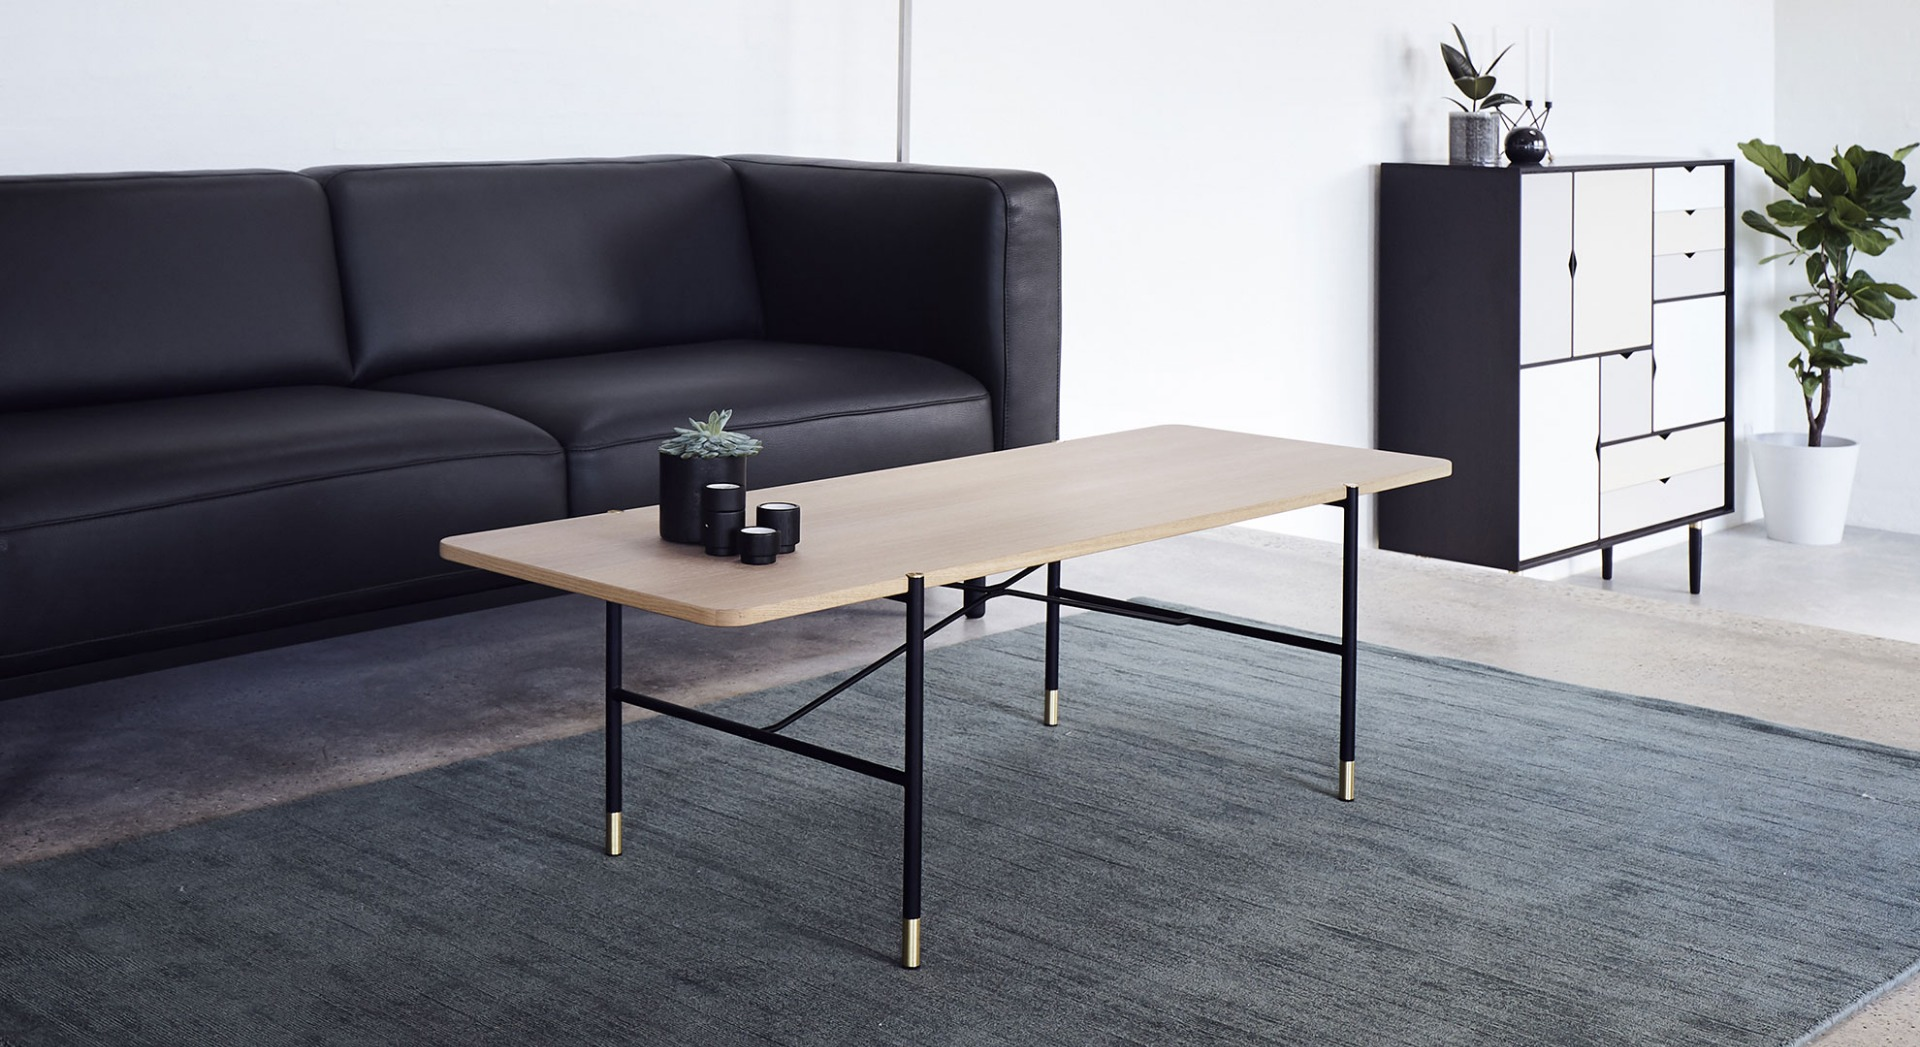 C6 - Andersen Furniture